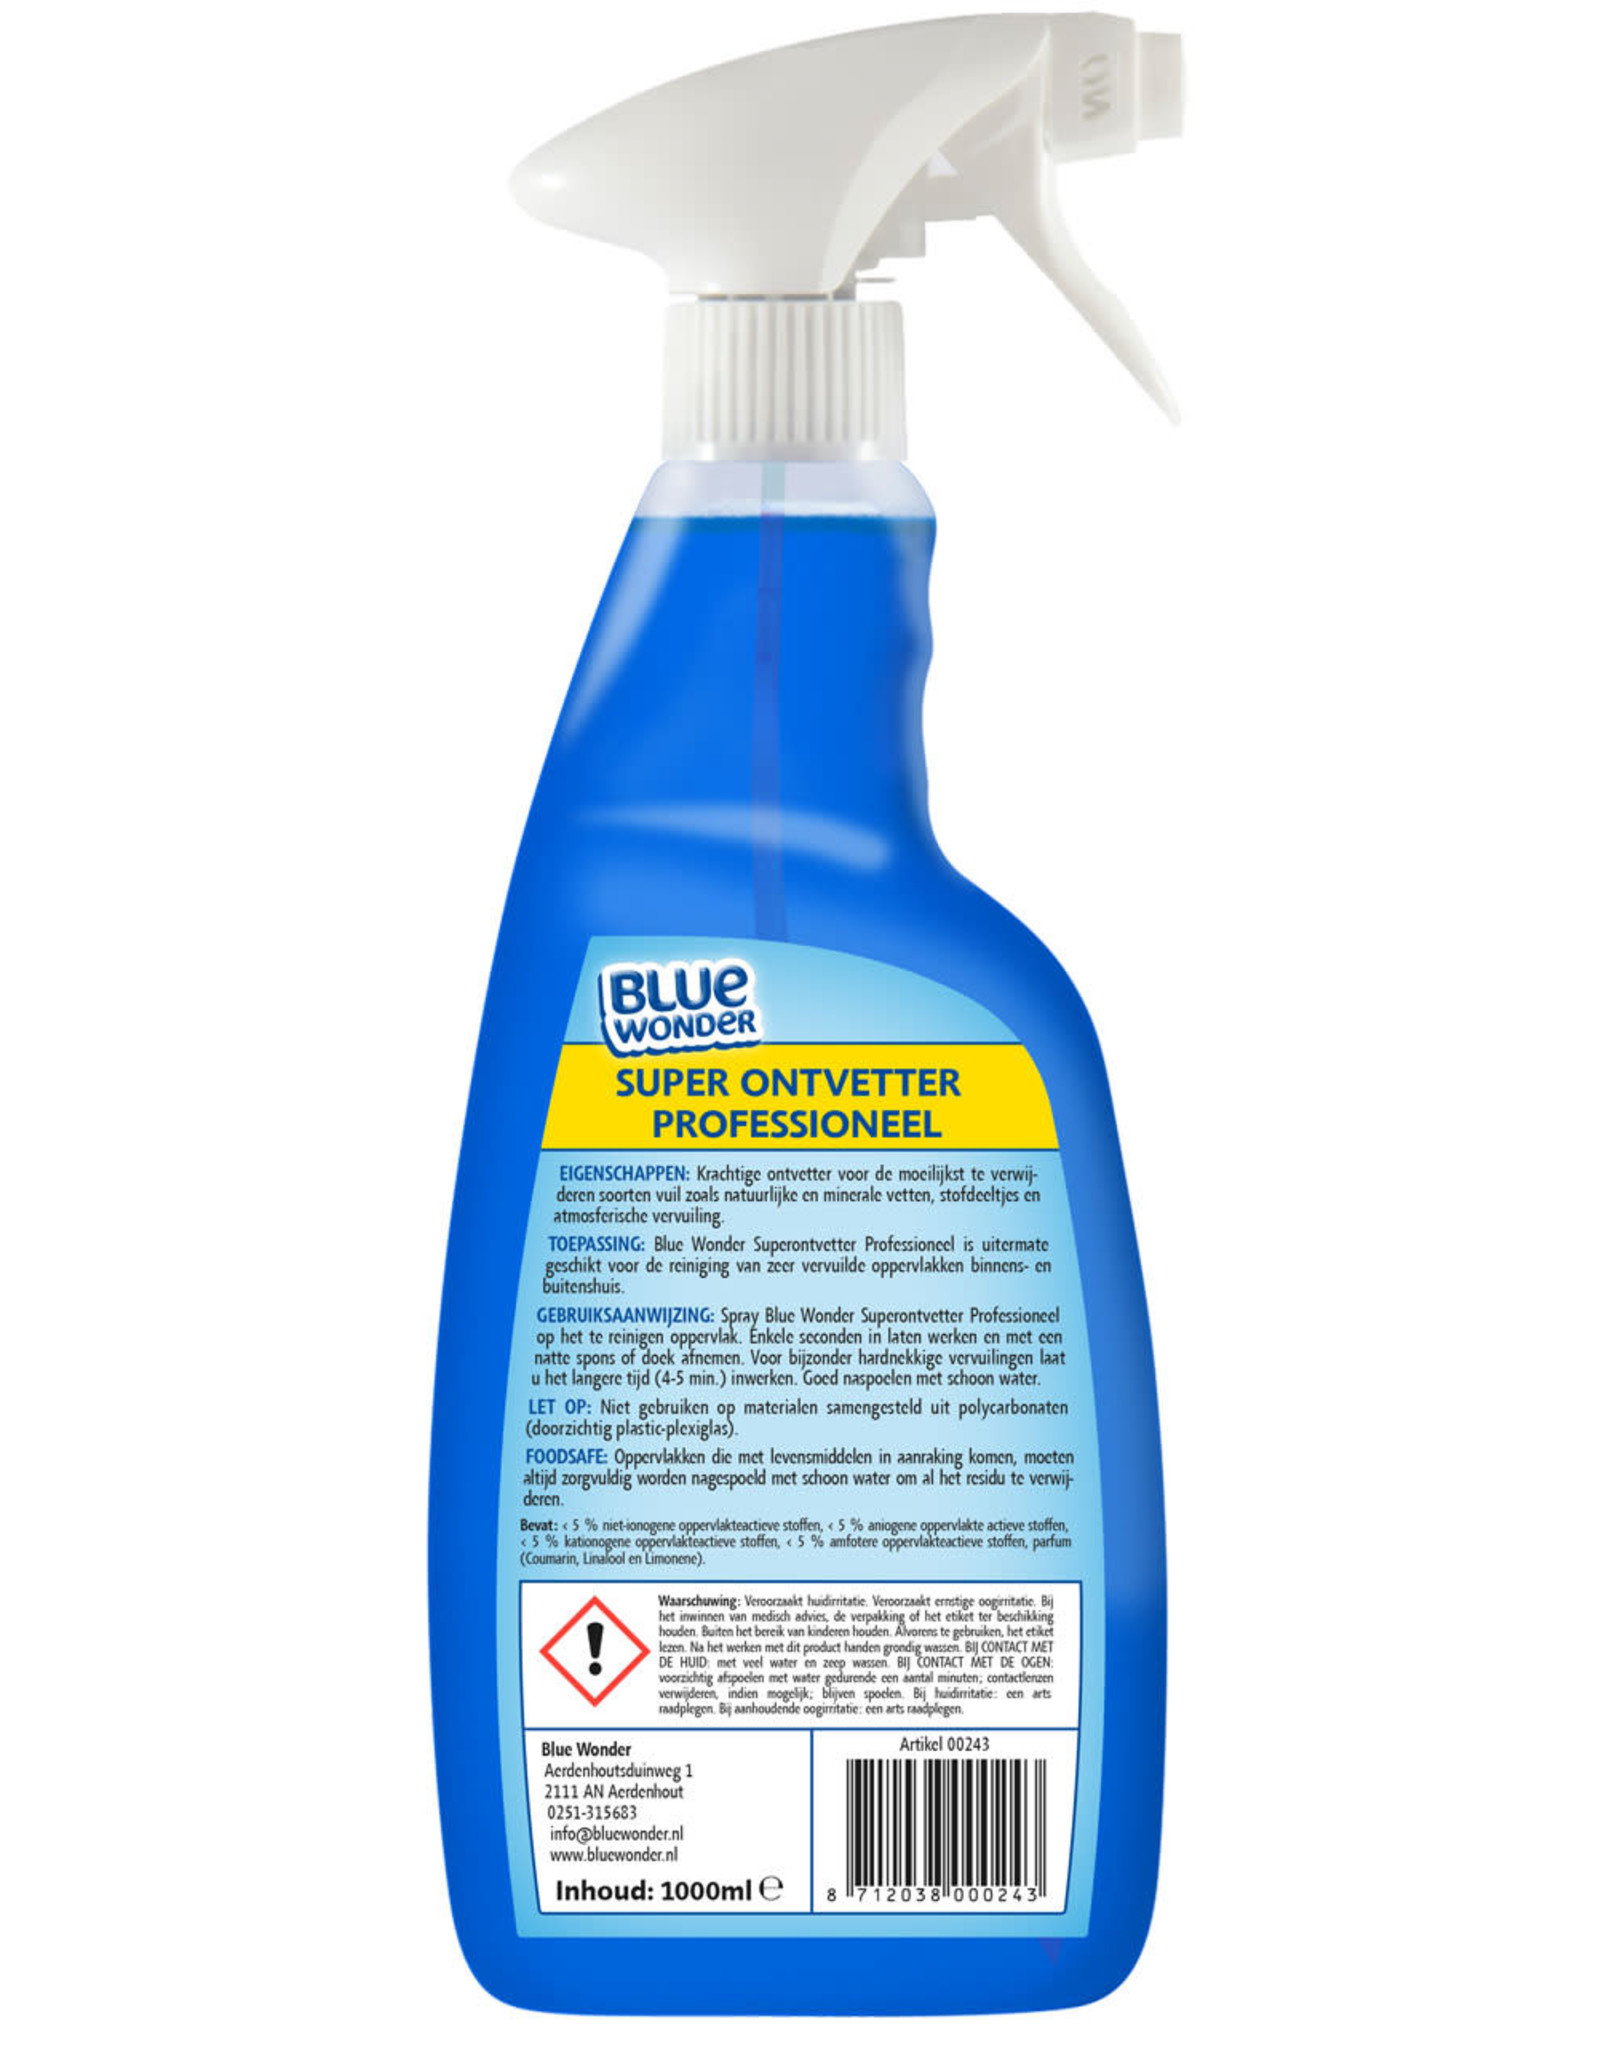 Blue Wonder Blue Wonder Professioneel Super ontvetter Spray  6x 1000 ml omdoos